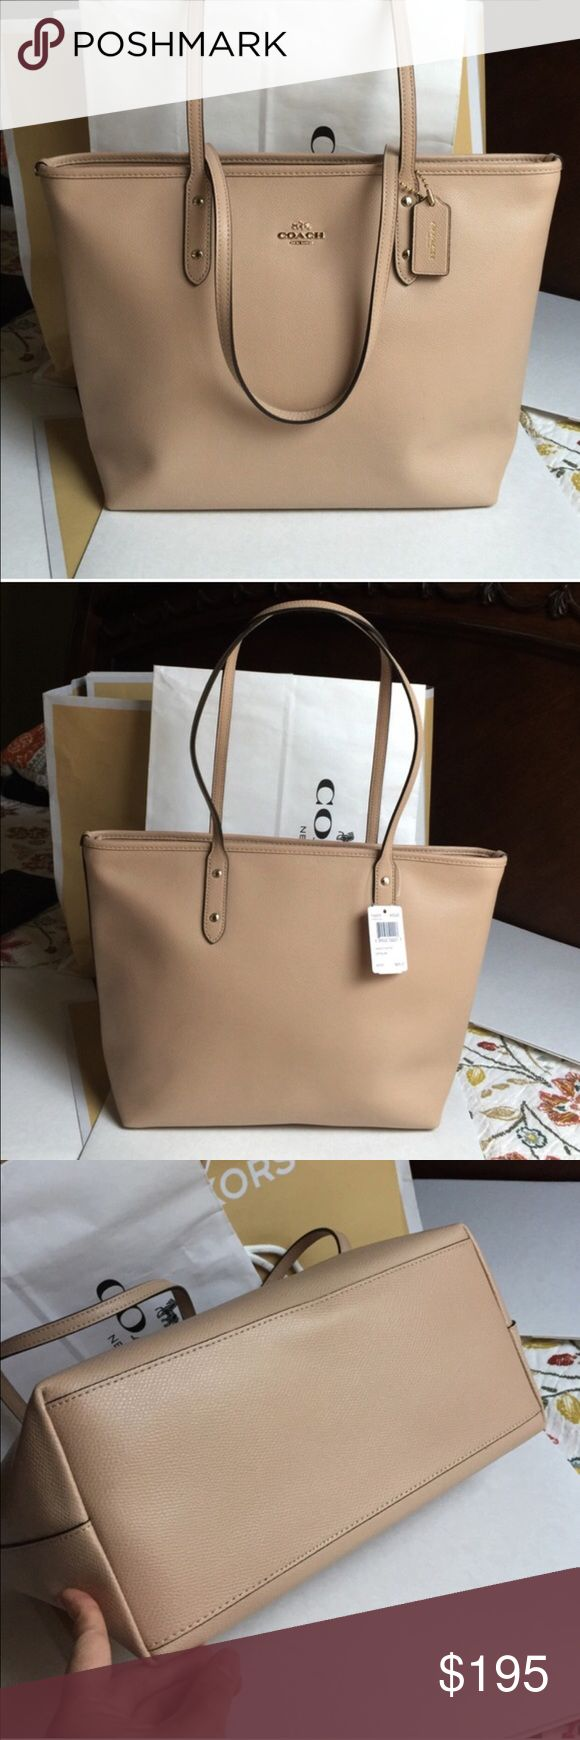 Coach Tote Bag 100% Authentic Coach Tote Bag, brand new with tag!Beechwood Color. Coach Bags Totes